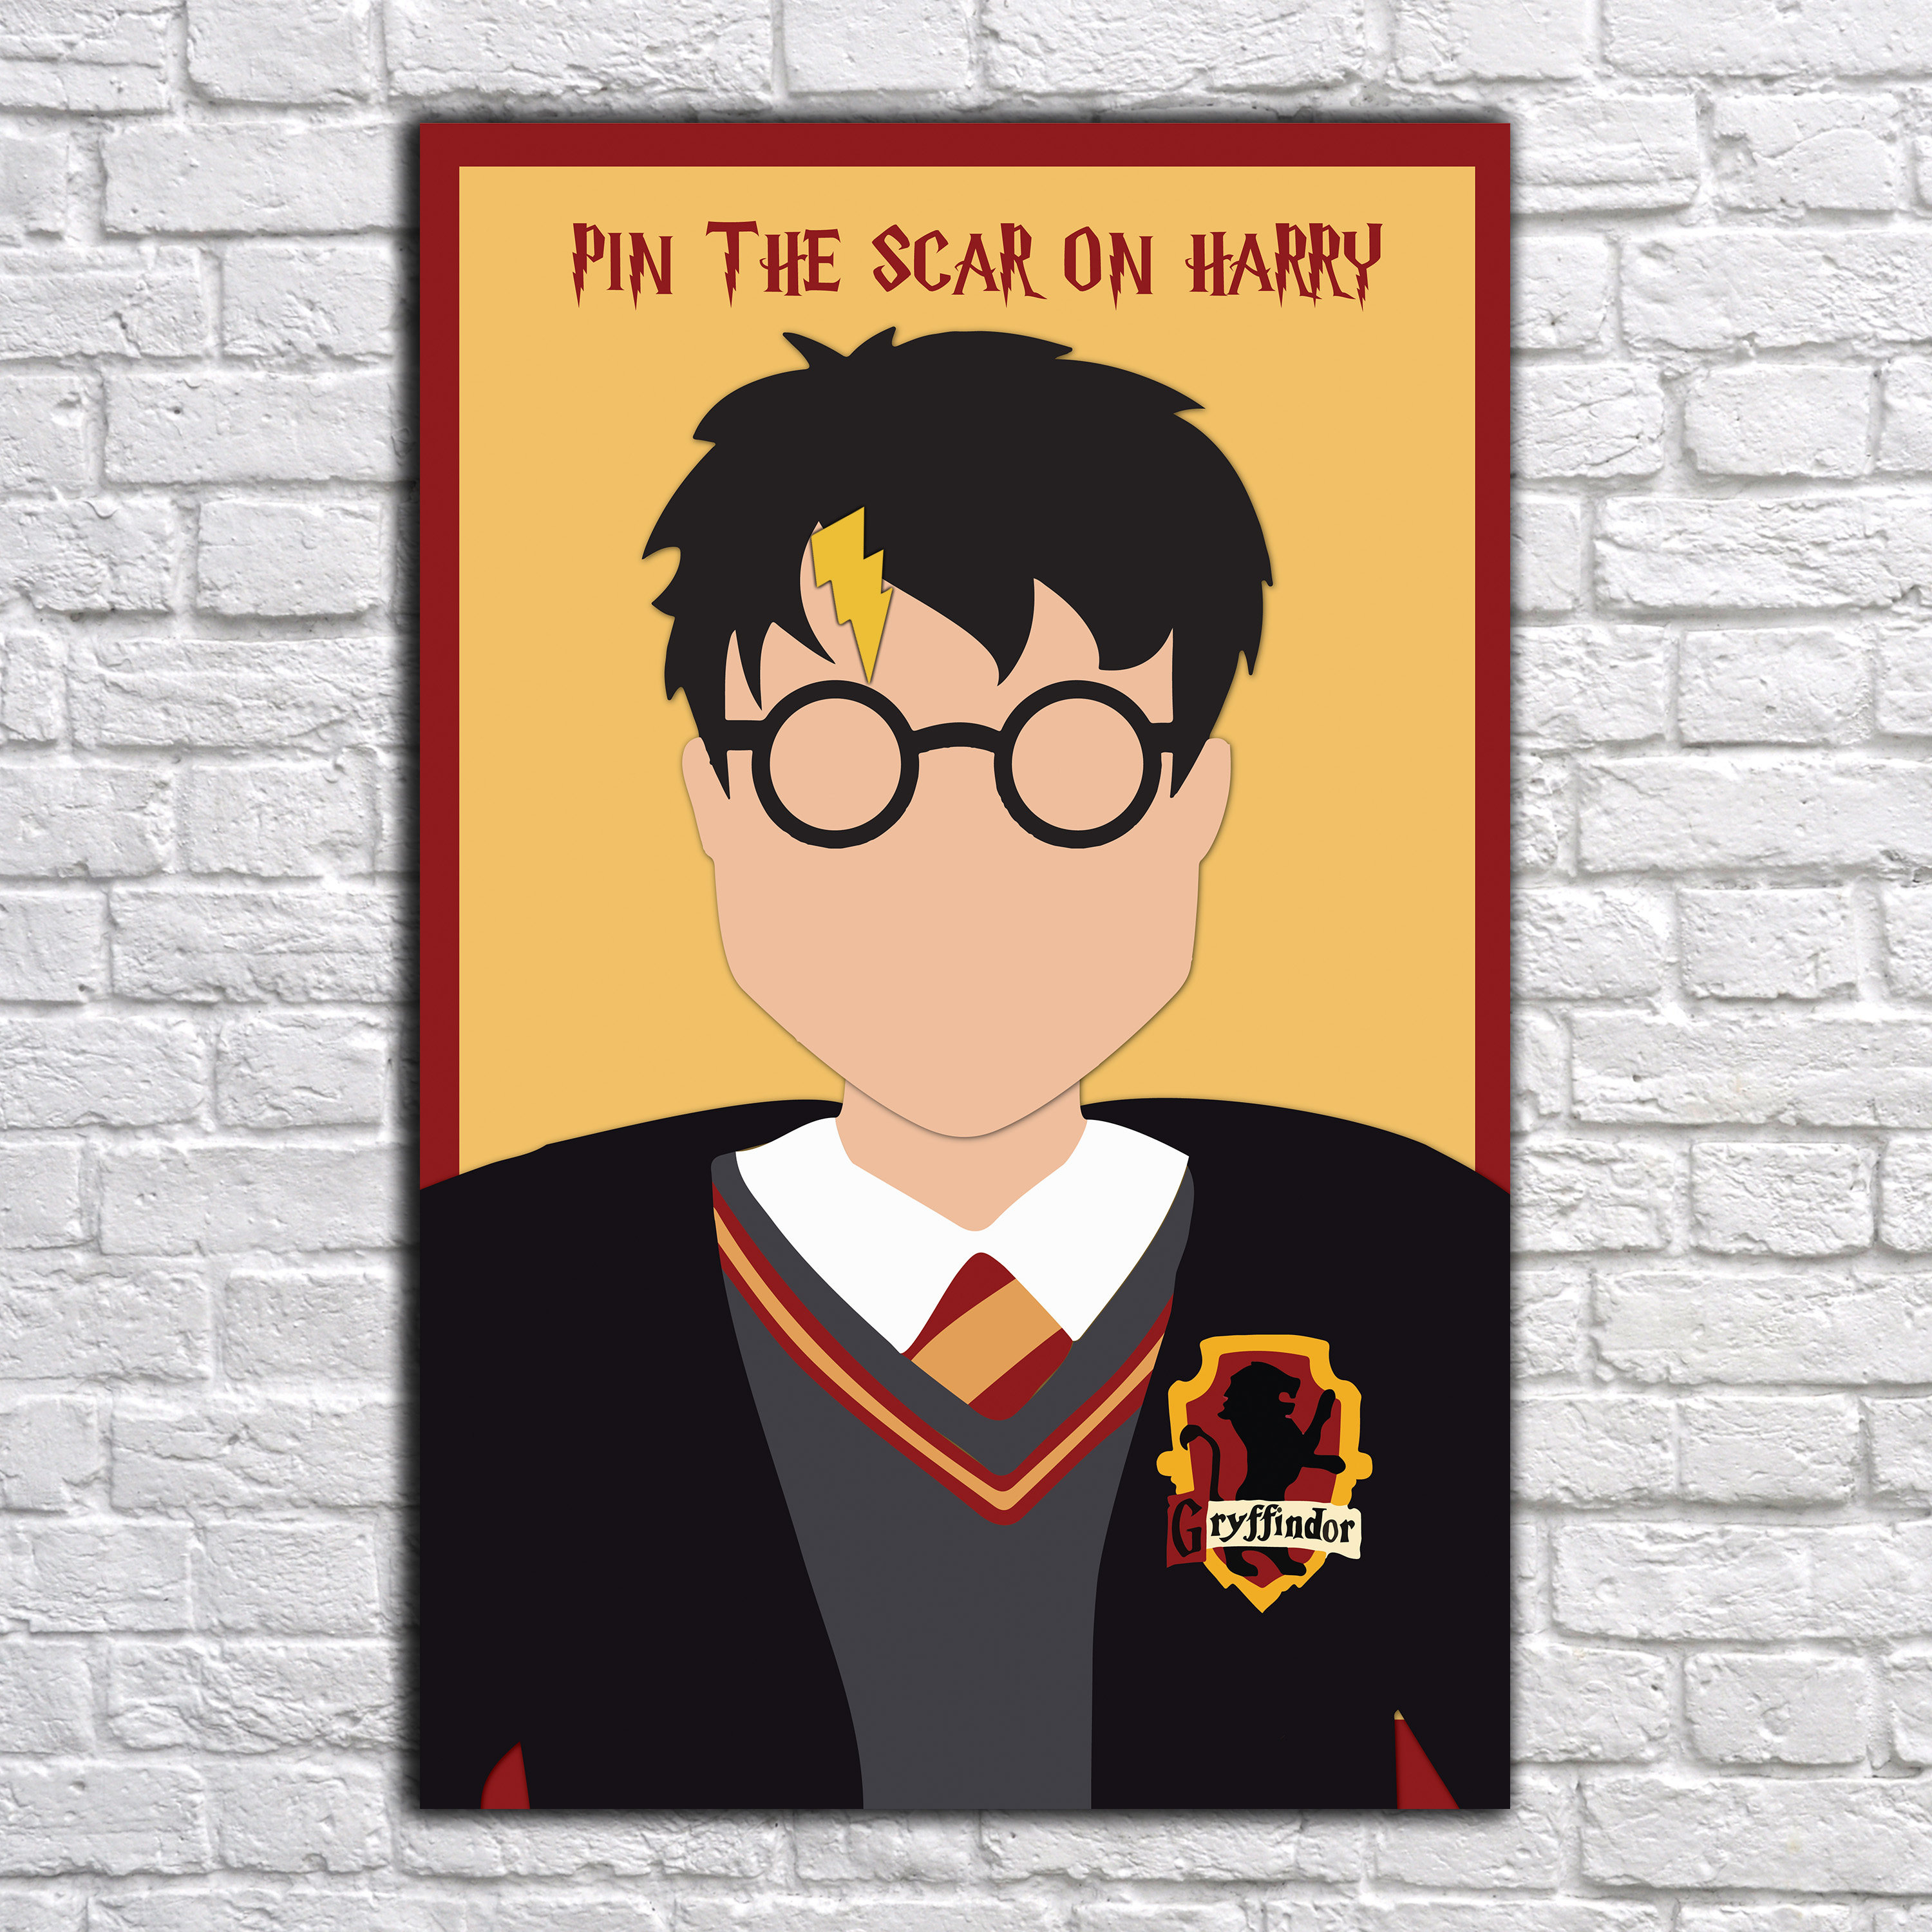 Harry Potter Games Pin the Scar on Harry Potter Harry Potter